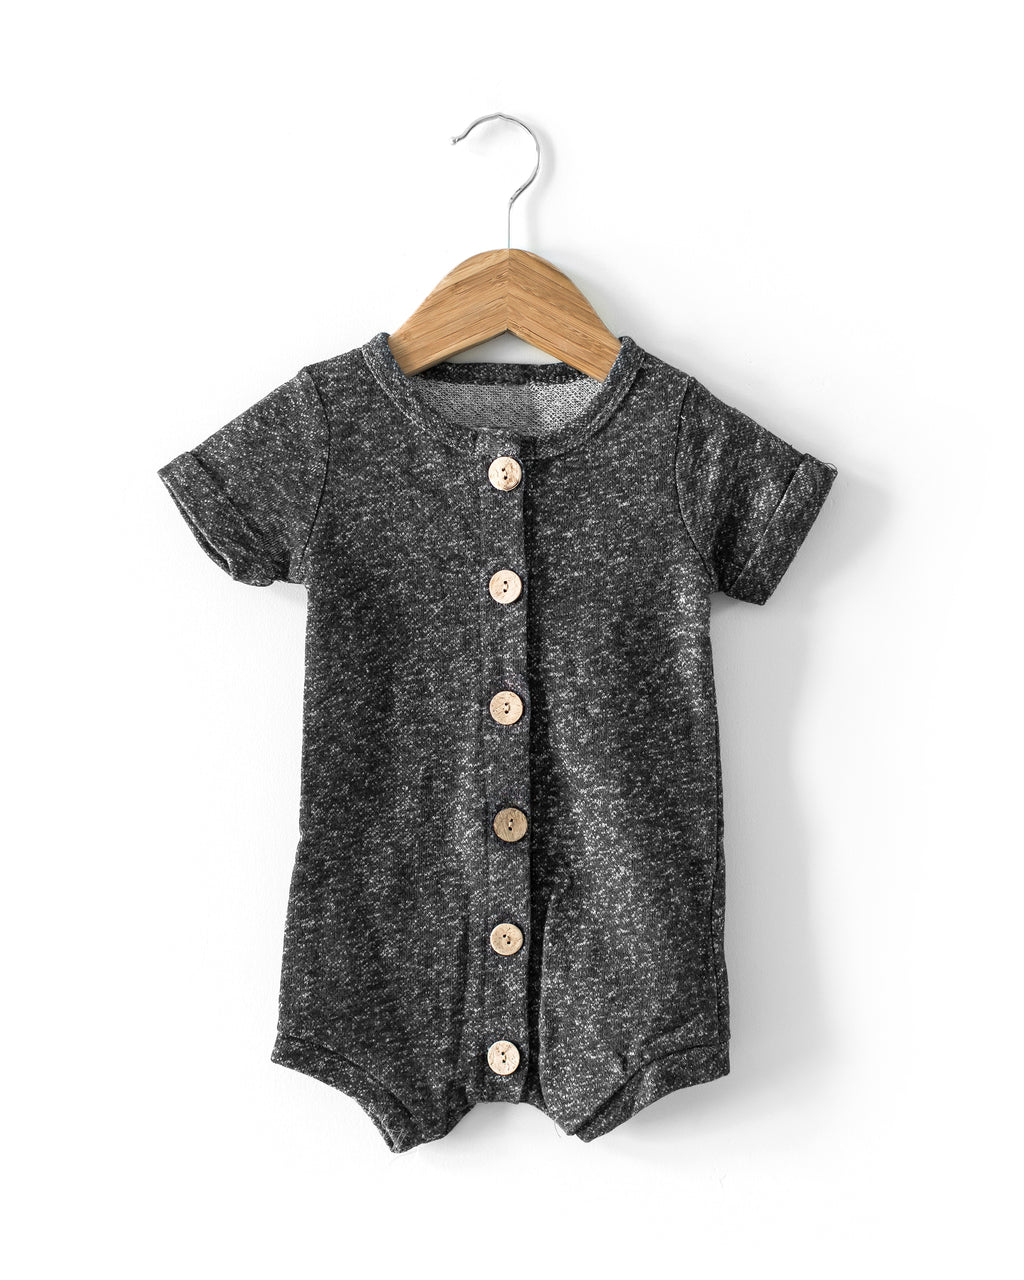 Classic Romper in Charcoal - Reverie Threads